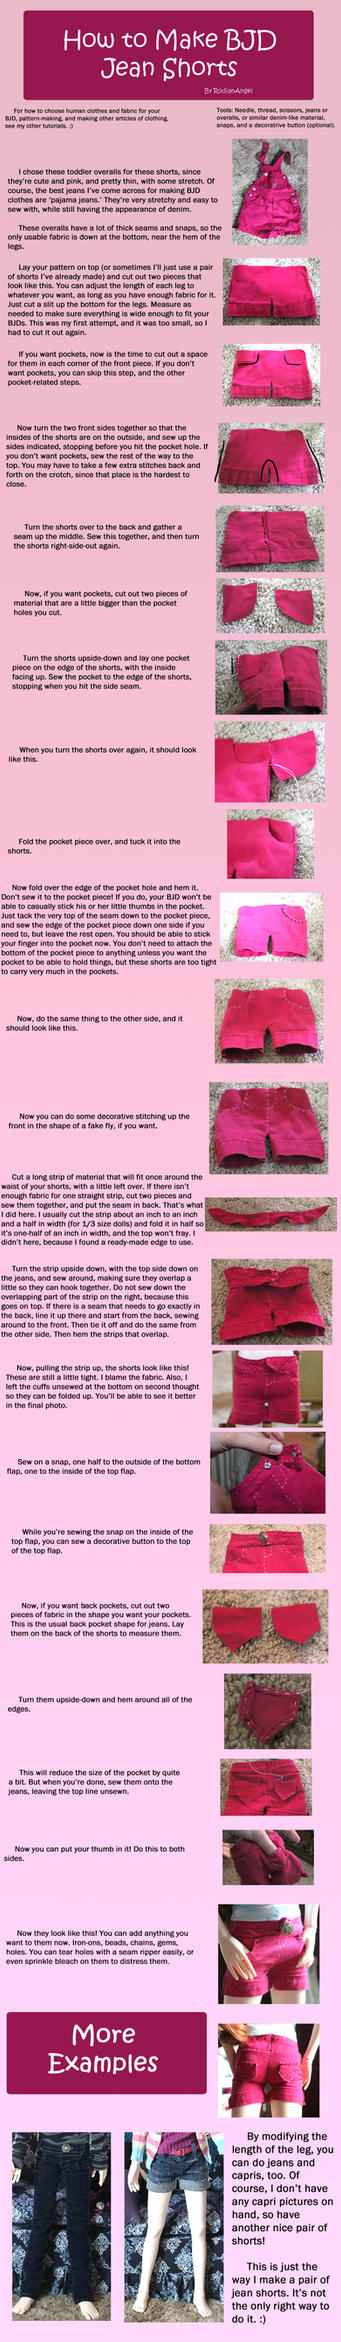 How to Make BJD Jean Shorts by RodianAngel